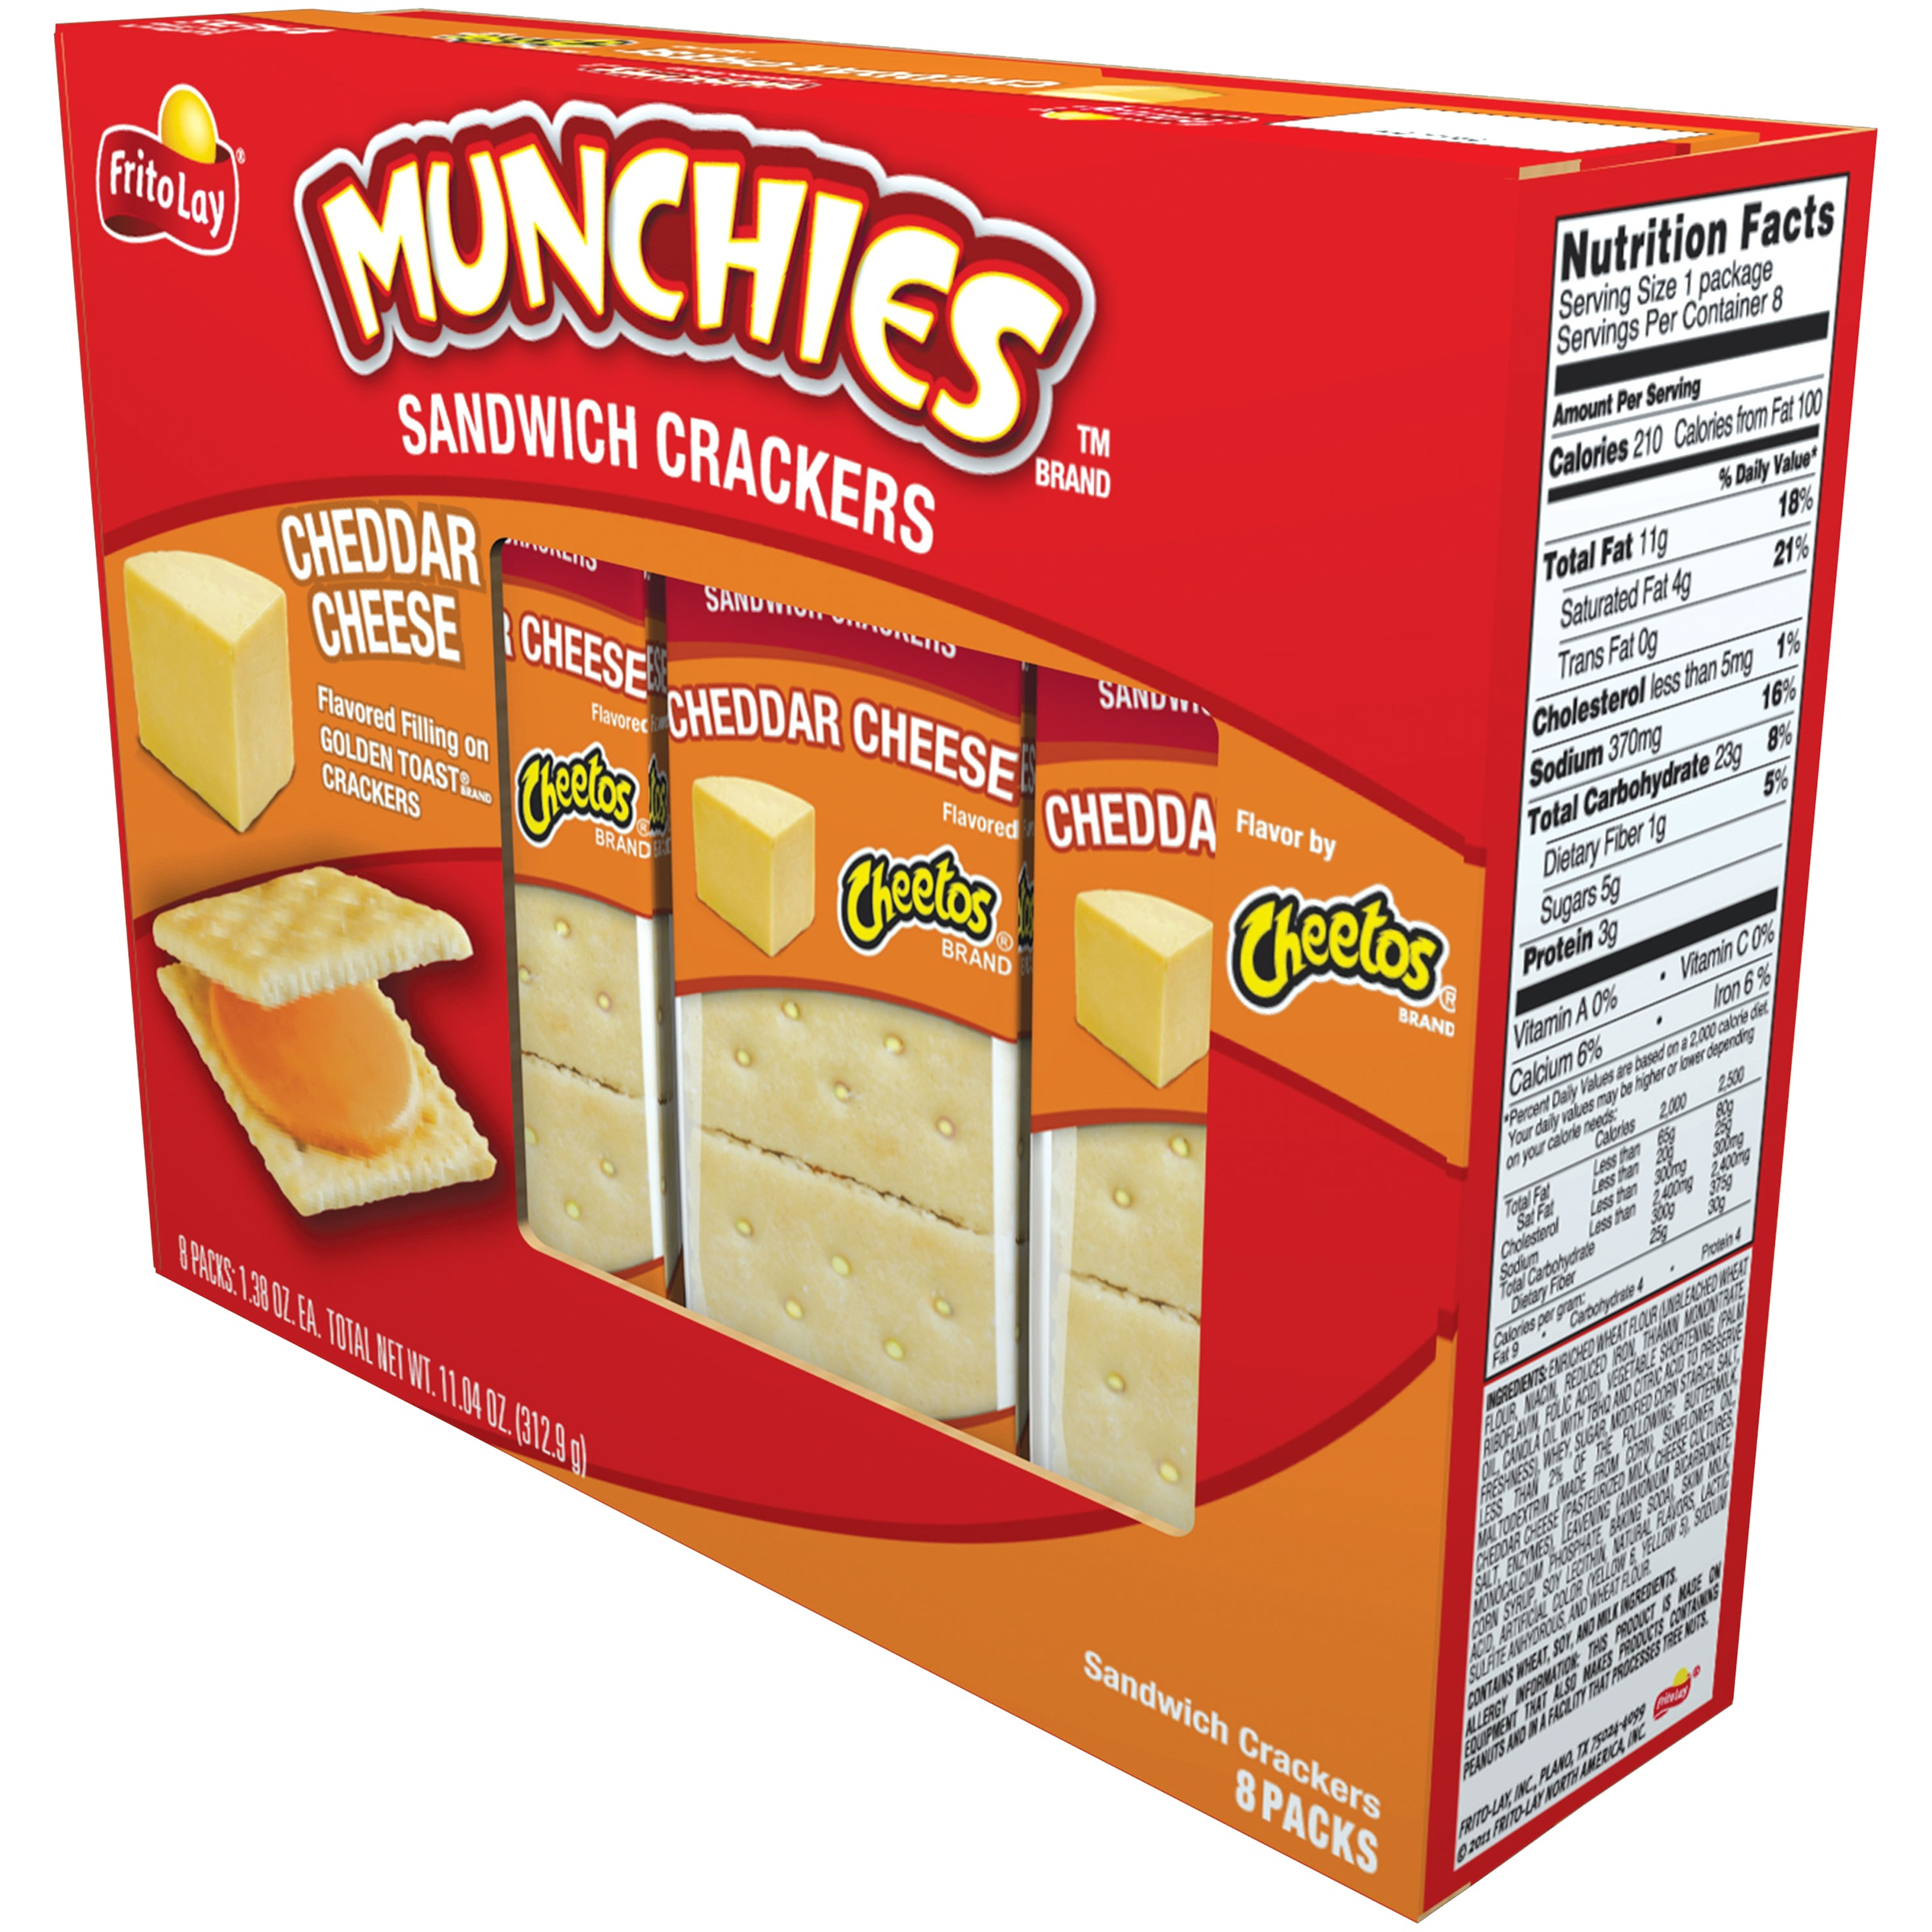 Munchies Cheddar Cheese Sandwich Crackers, 8 Packs by Frito-Lay, Inc.